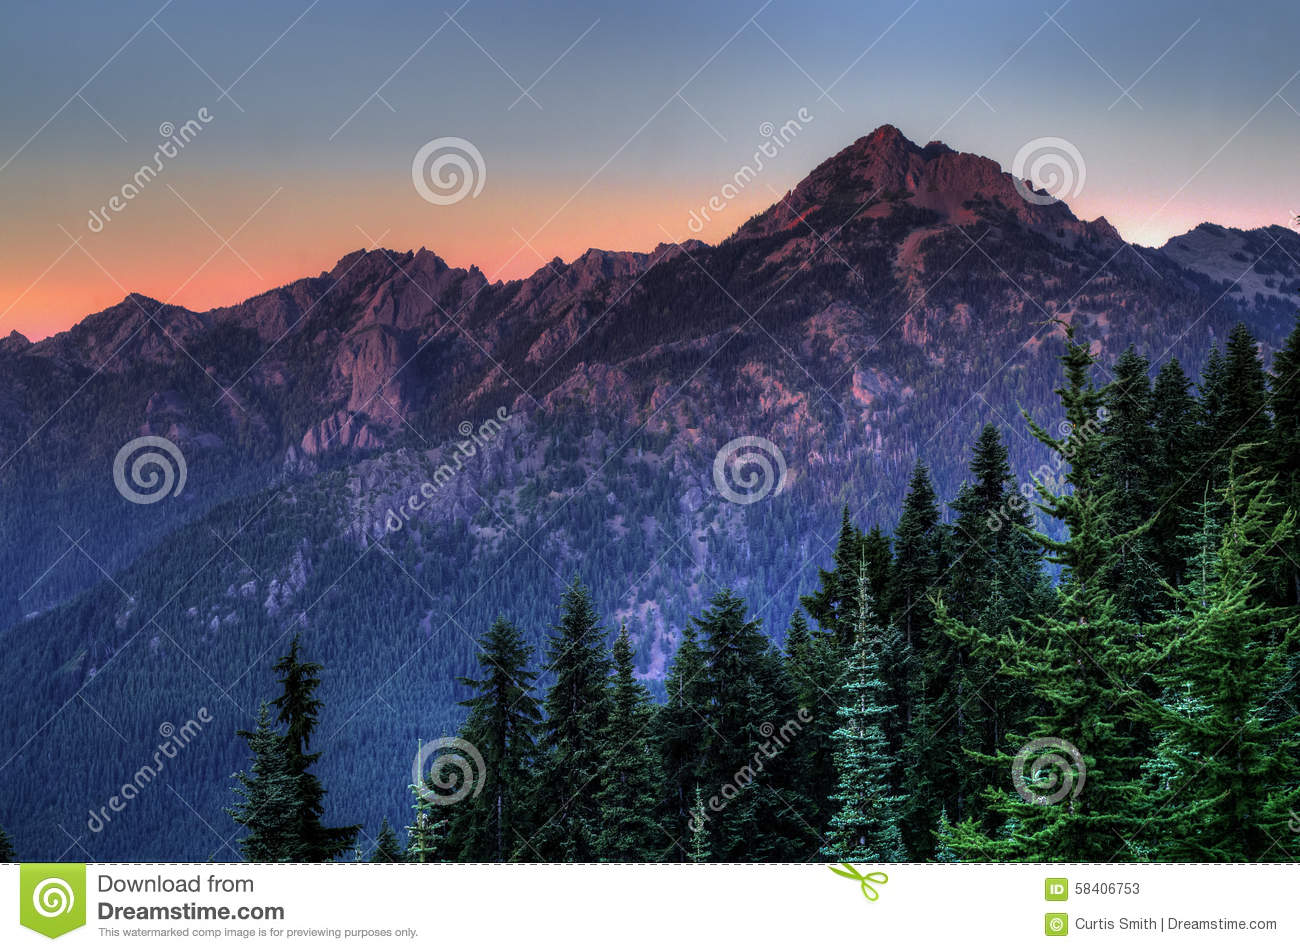 Mountain in sunset light in Olympic National Park, Washington state